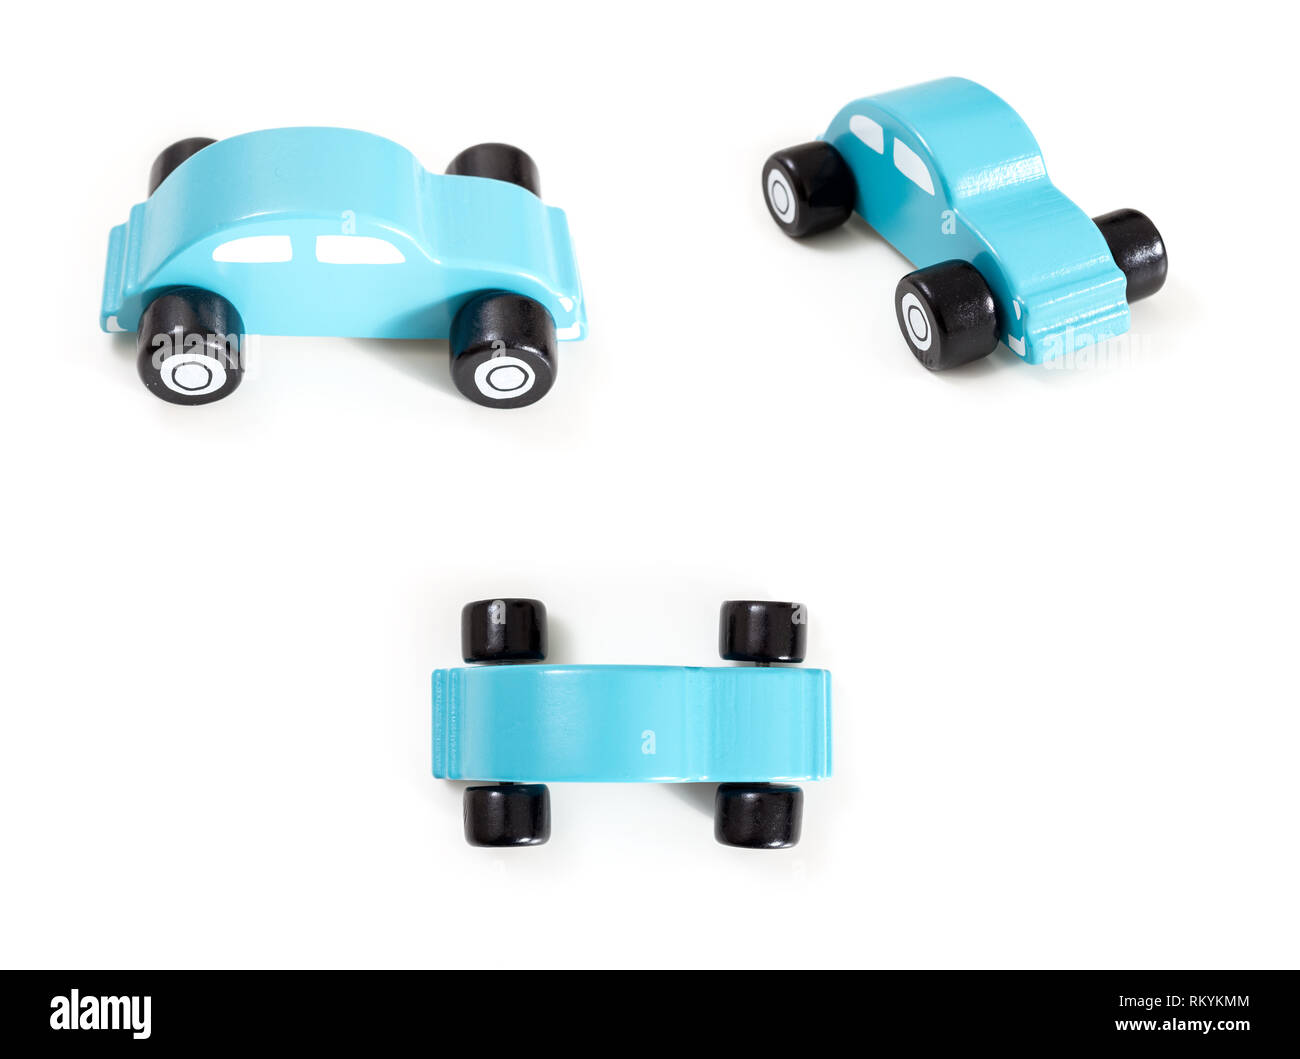 A blue toy car front, side and top view, on white background. - Stock Image